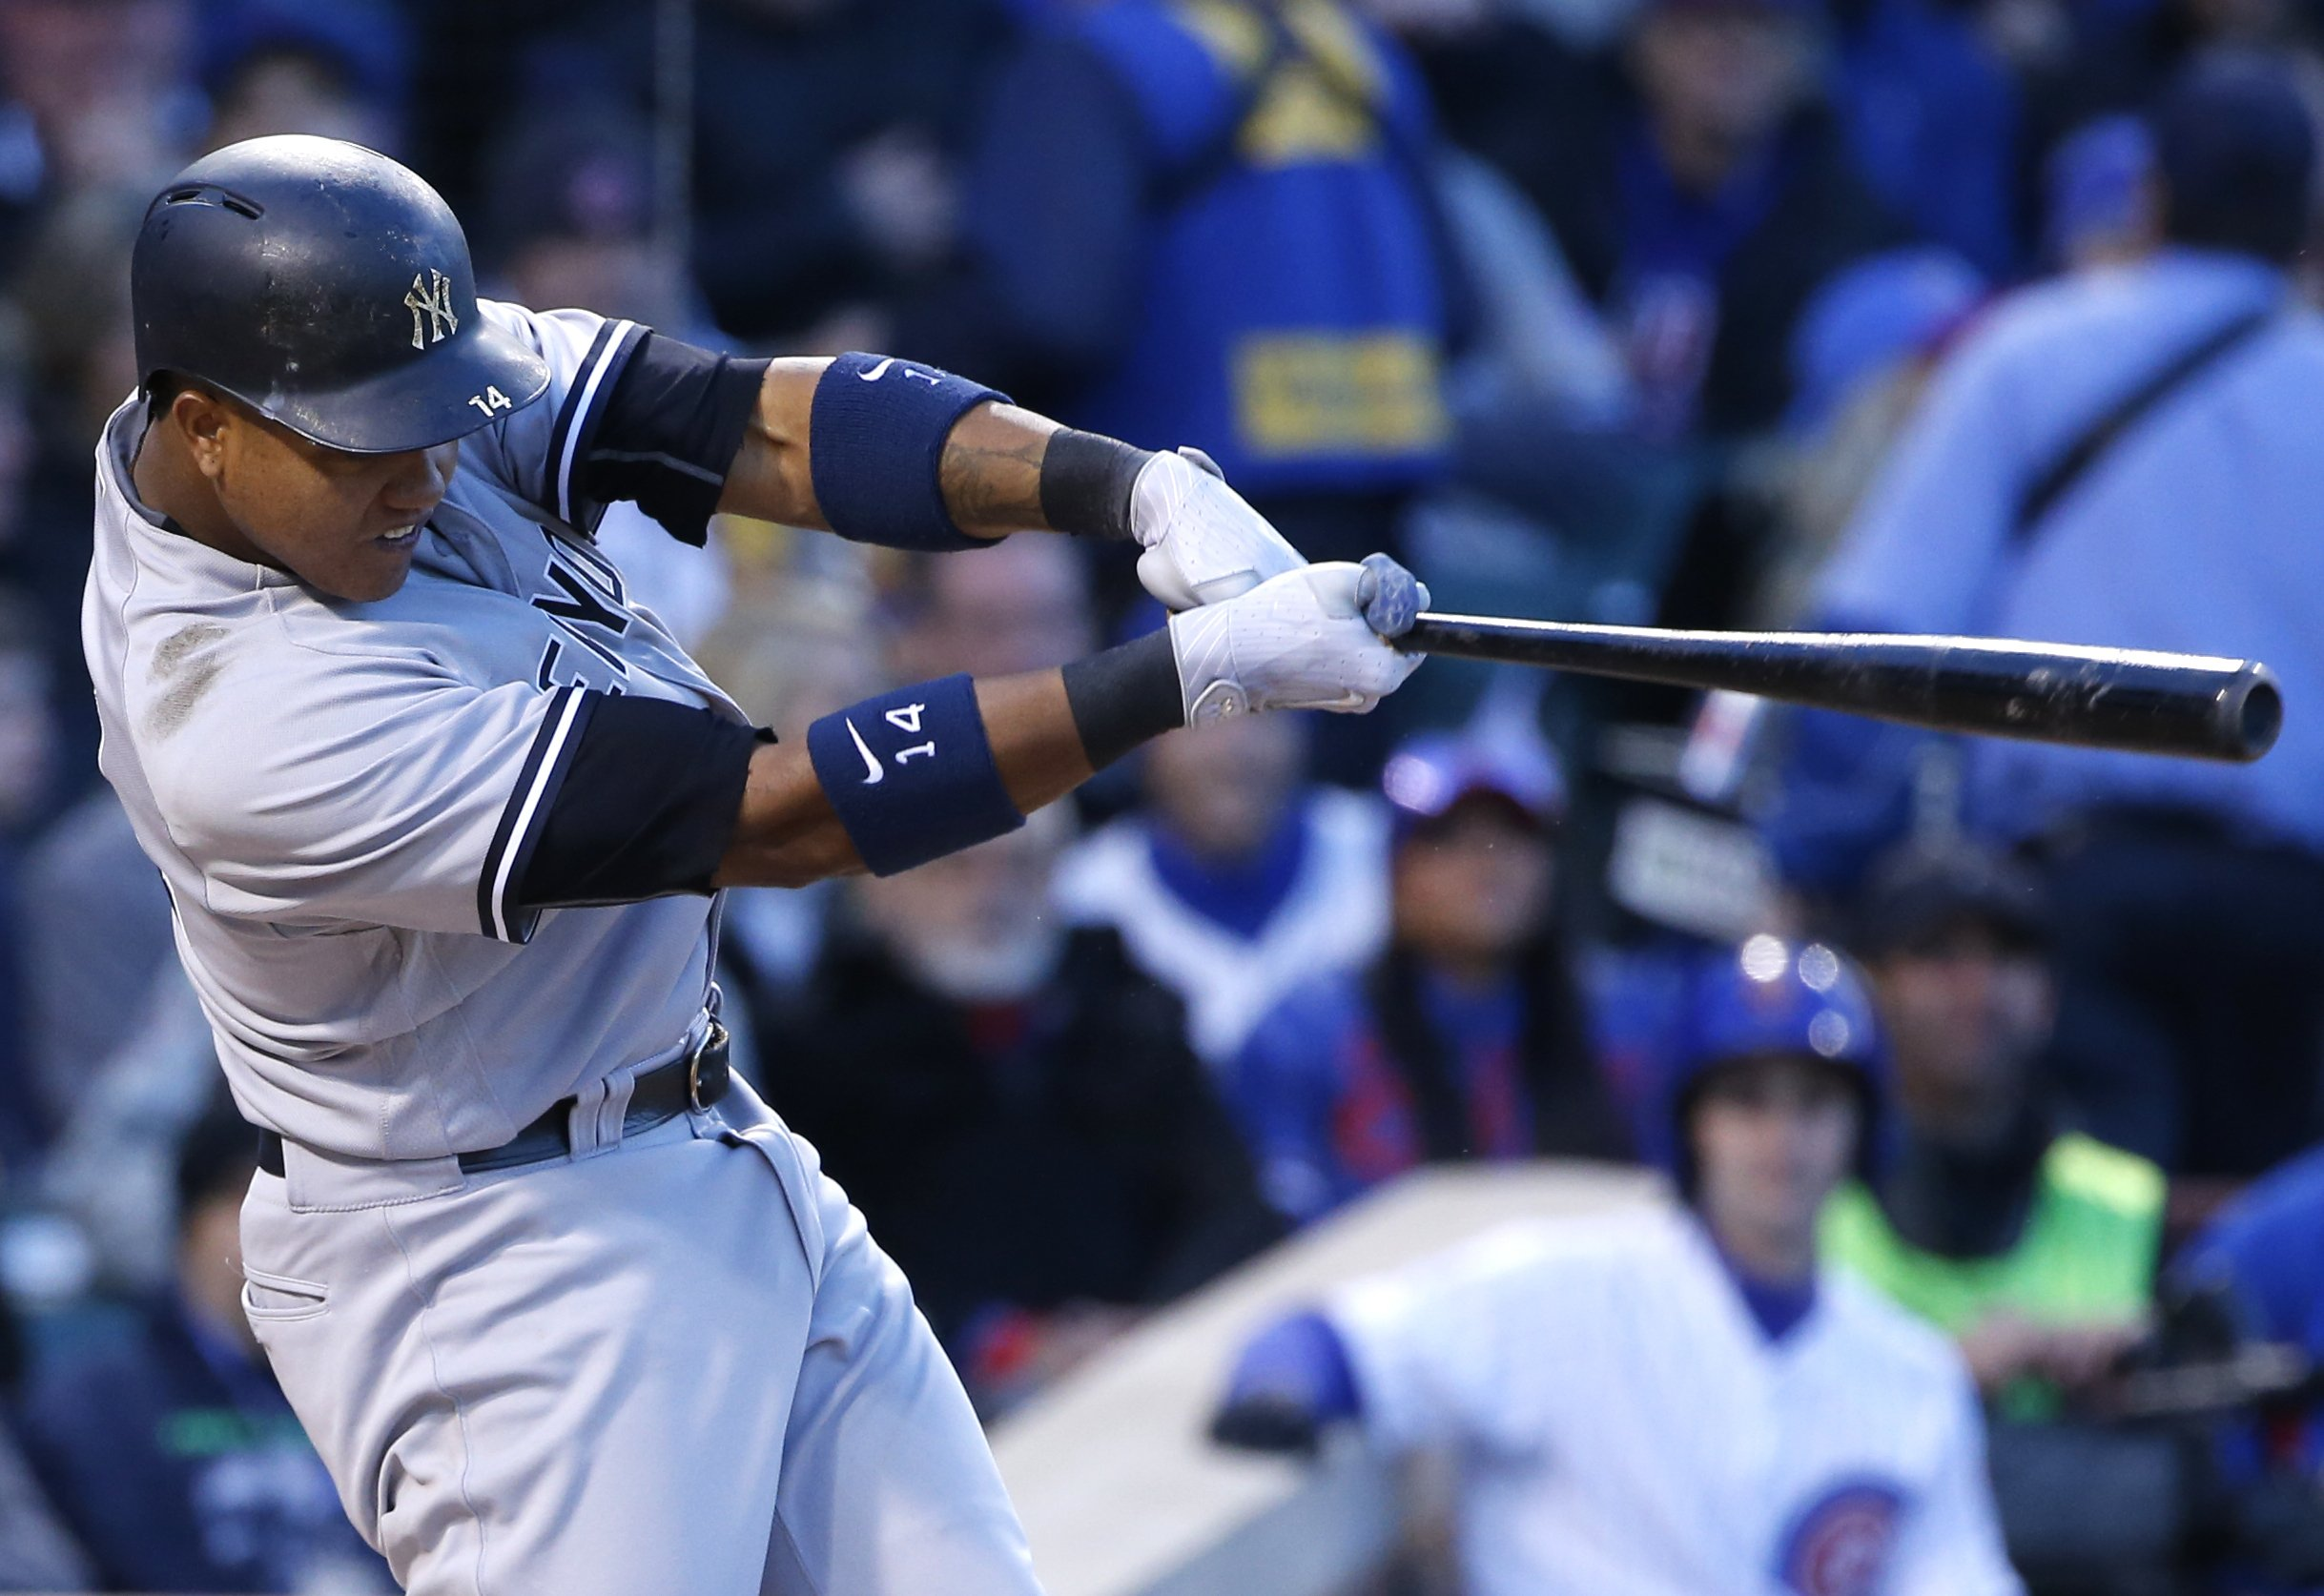 finest selection d1090 34613 Starlin Castro helps Yankees to 11-6 win over Cubs